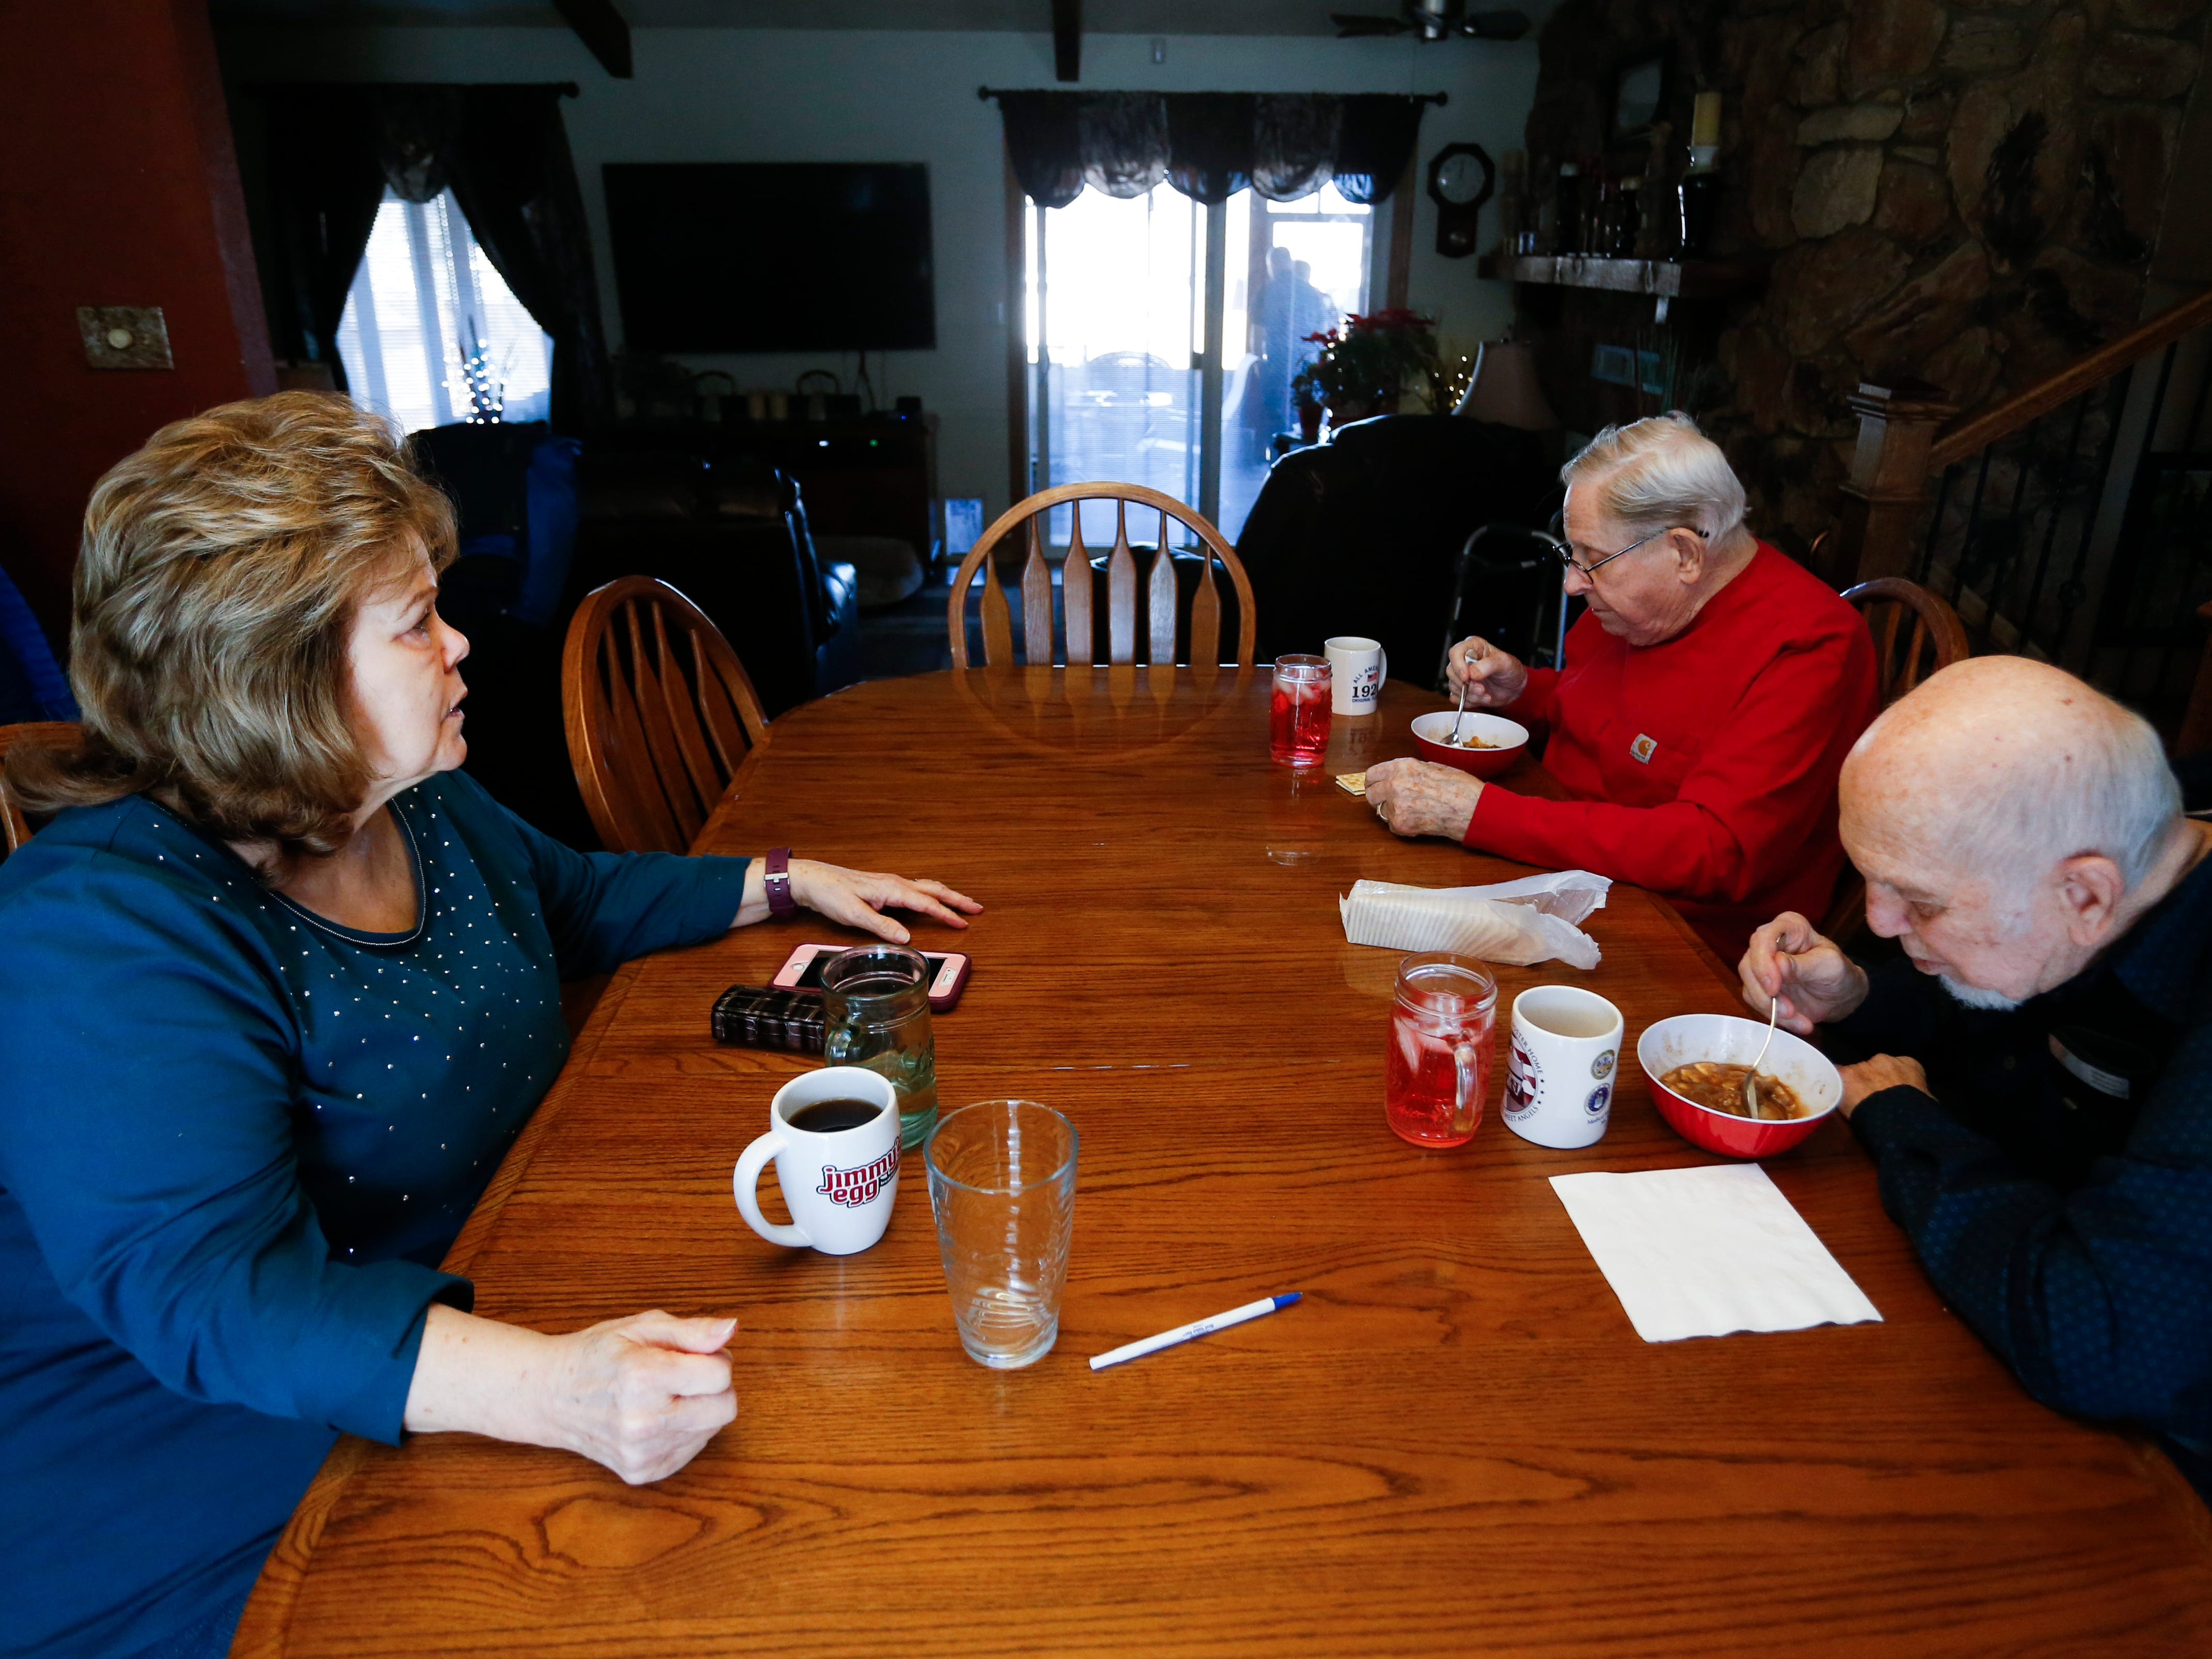 Joyce Keim talks with veterans Donald Gundlach (center), 92, and Gene Solomon, 77, on Tuesday, Jan. 29, 2019. Keim and her husband opened up their home to veterans as part of the VA's Medical Foster Home Program.